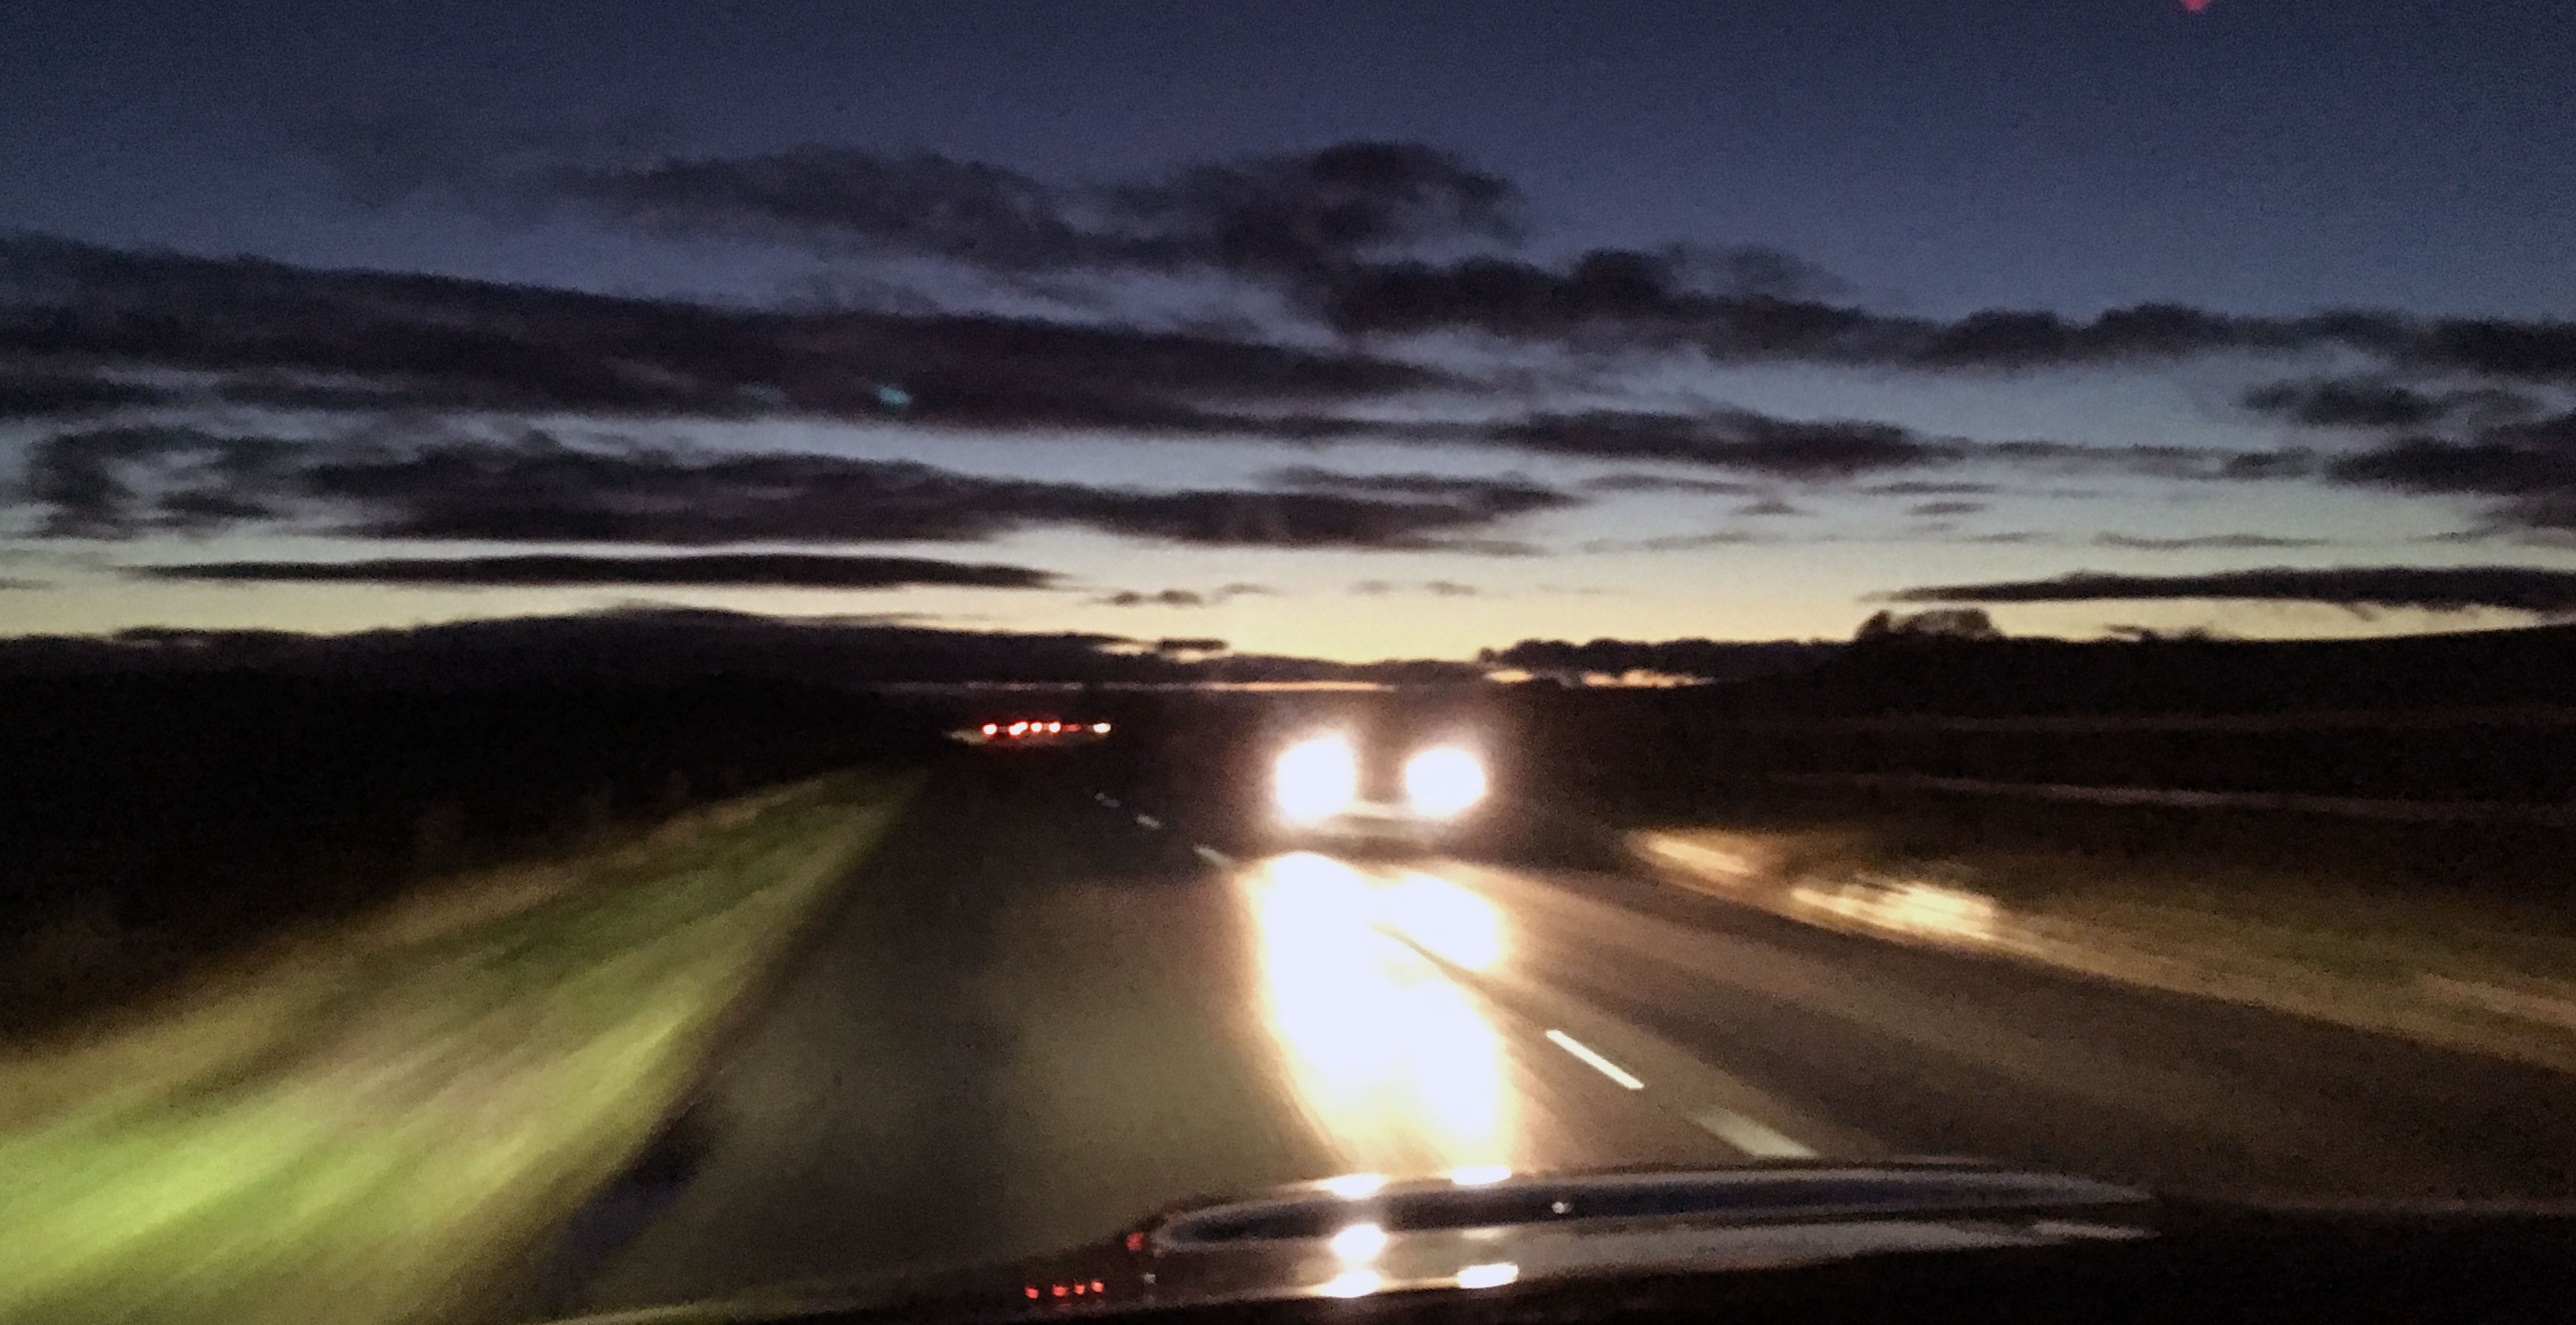 Ice, wind, rain and fog, and driving in the dark – November